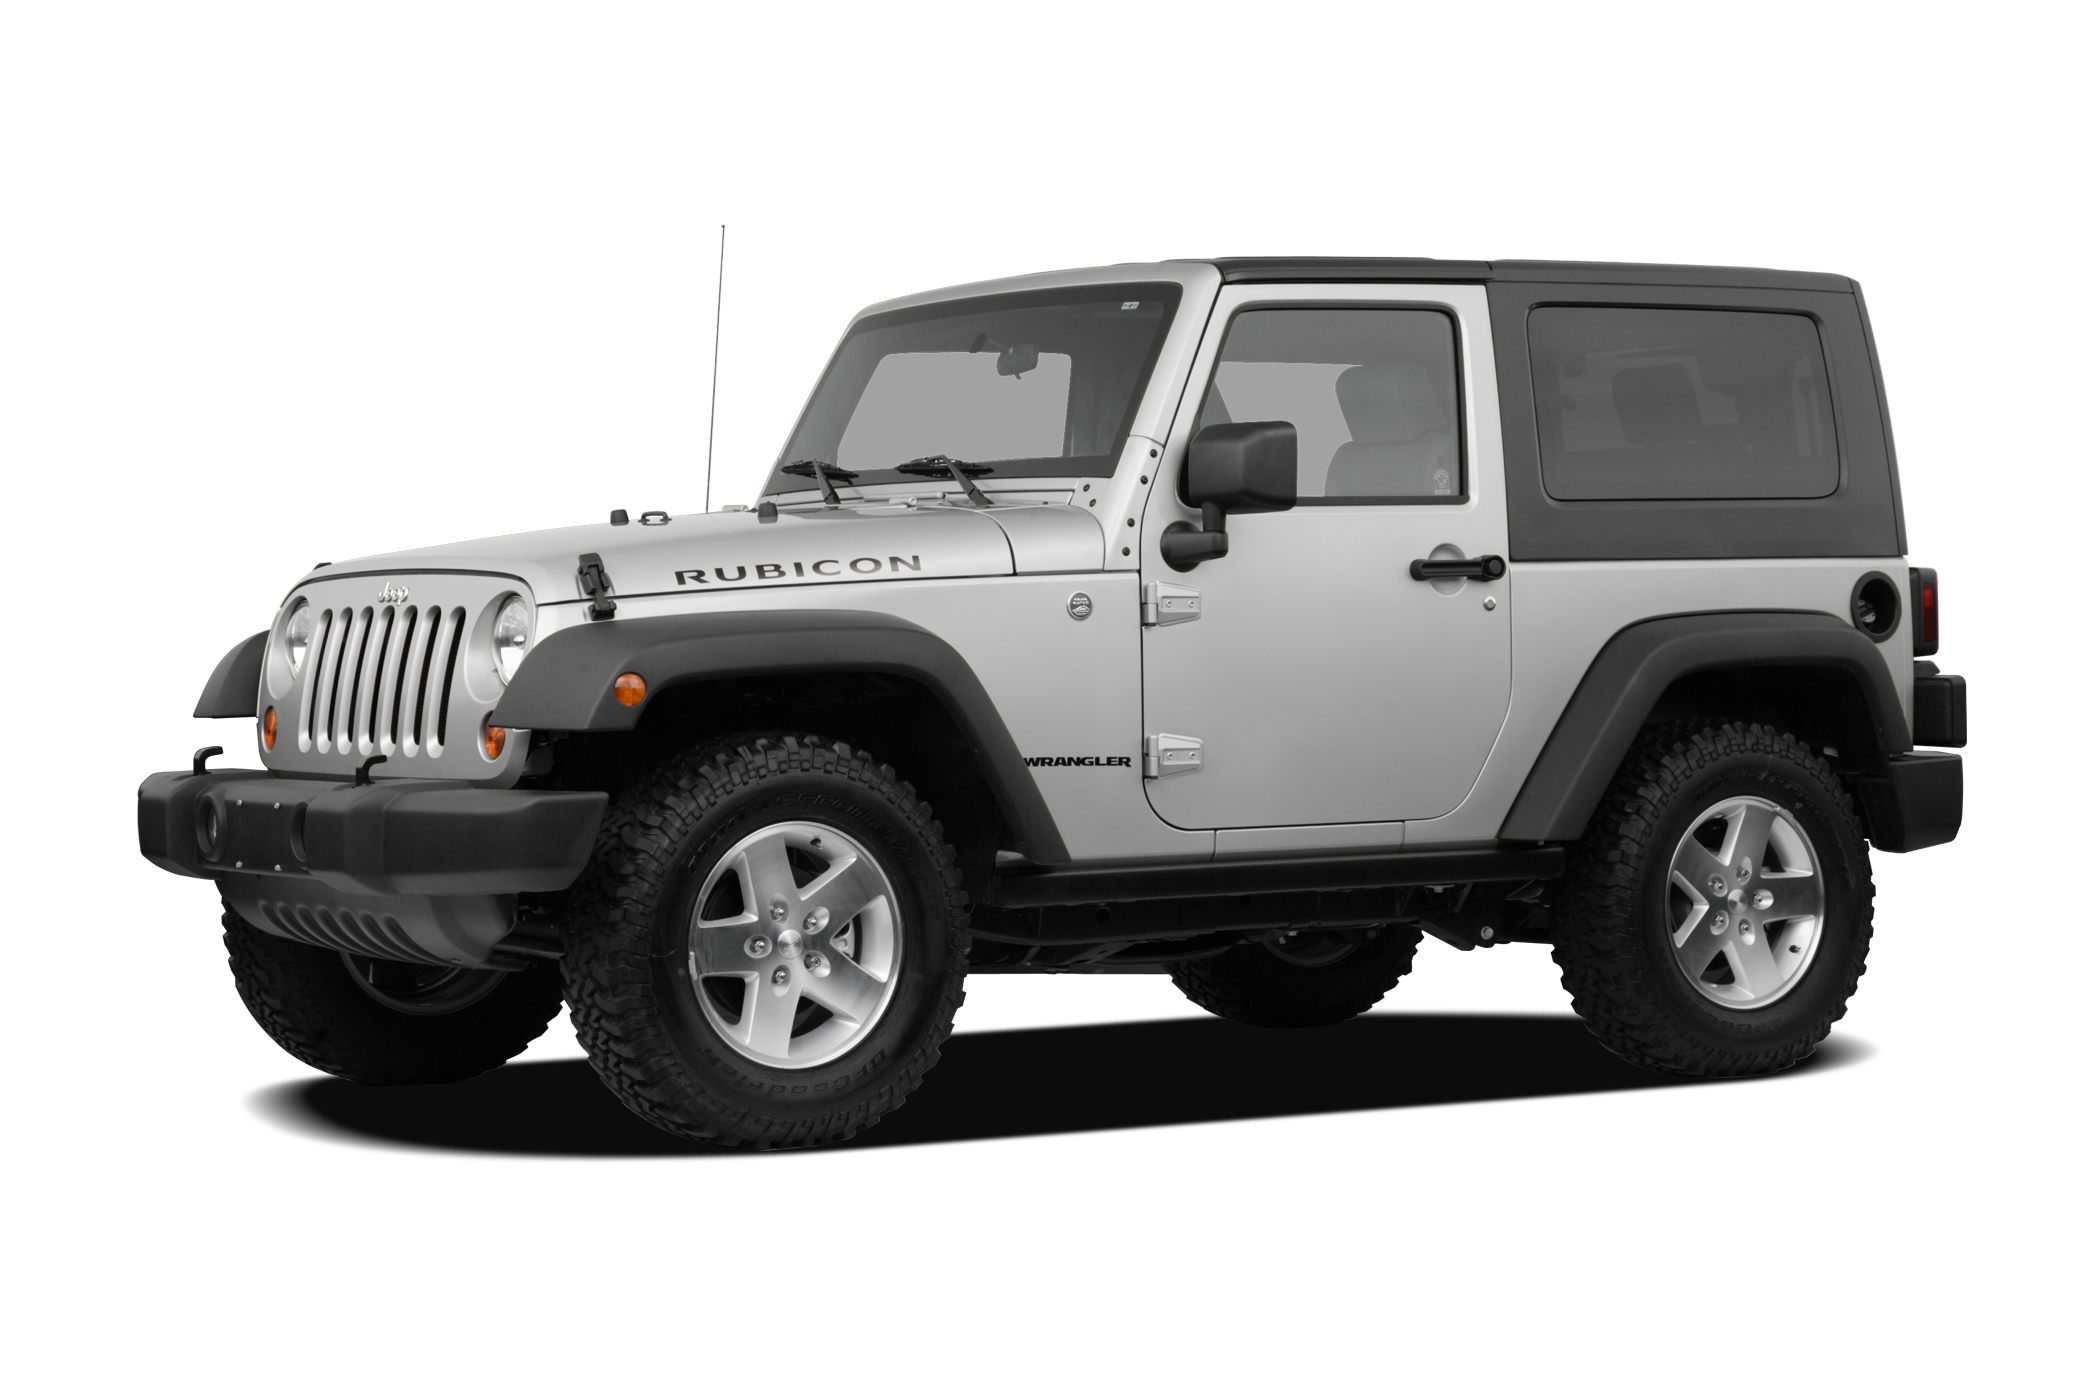 2009 Jeep Wrangler X SUV for sale in Miami for $18,598 with 52,153 miles.